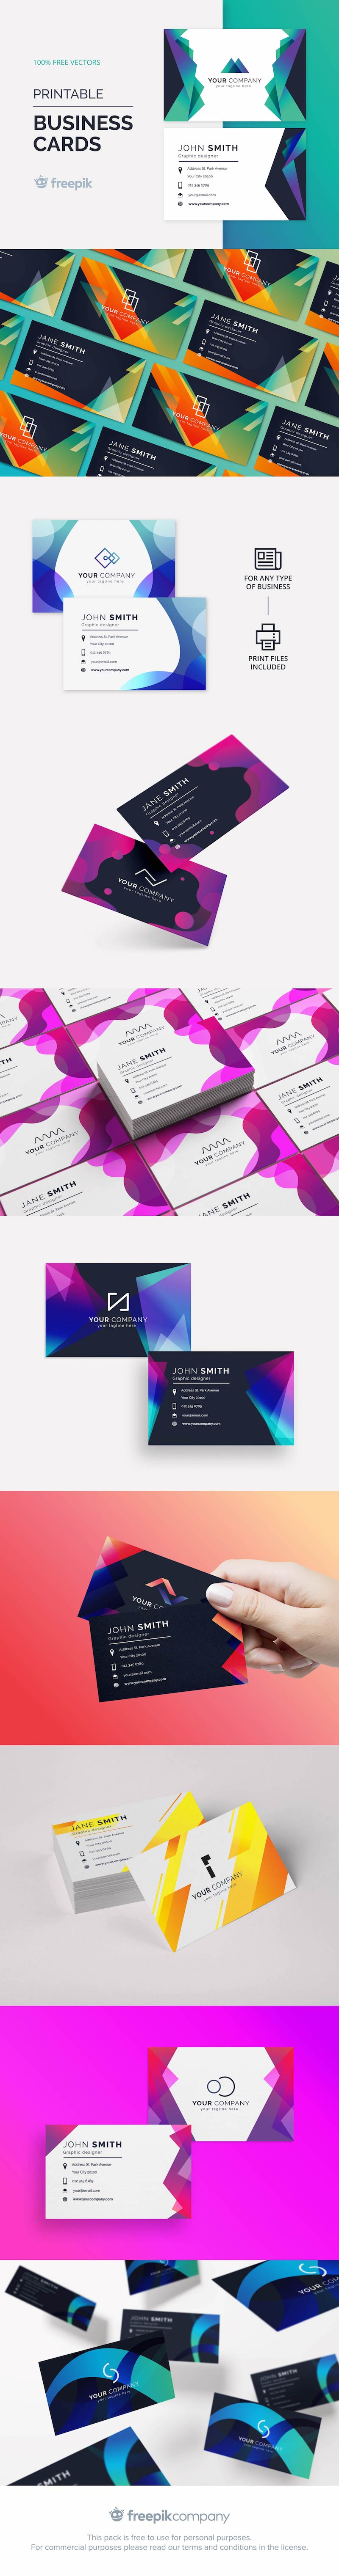 free modern business card vector templates